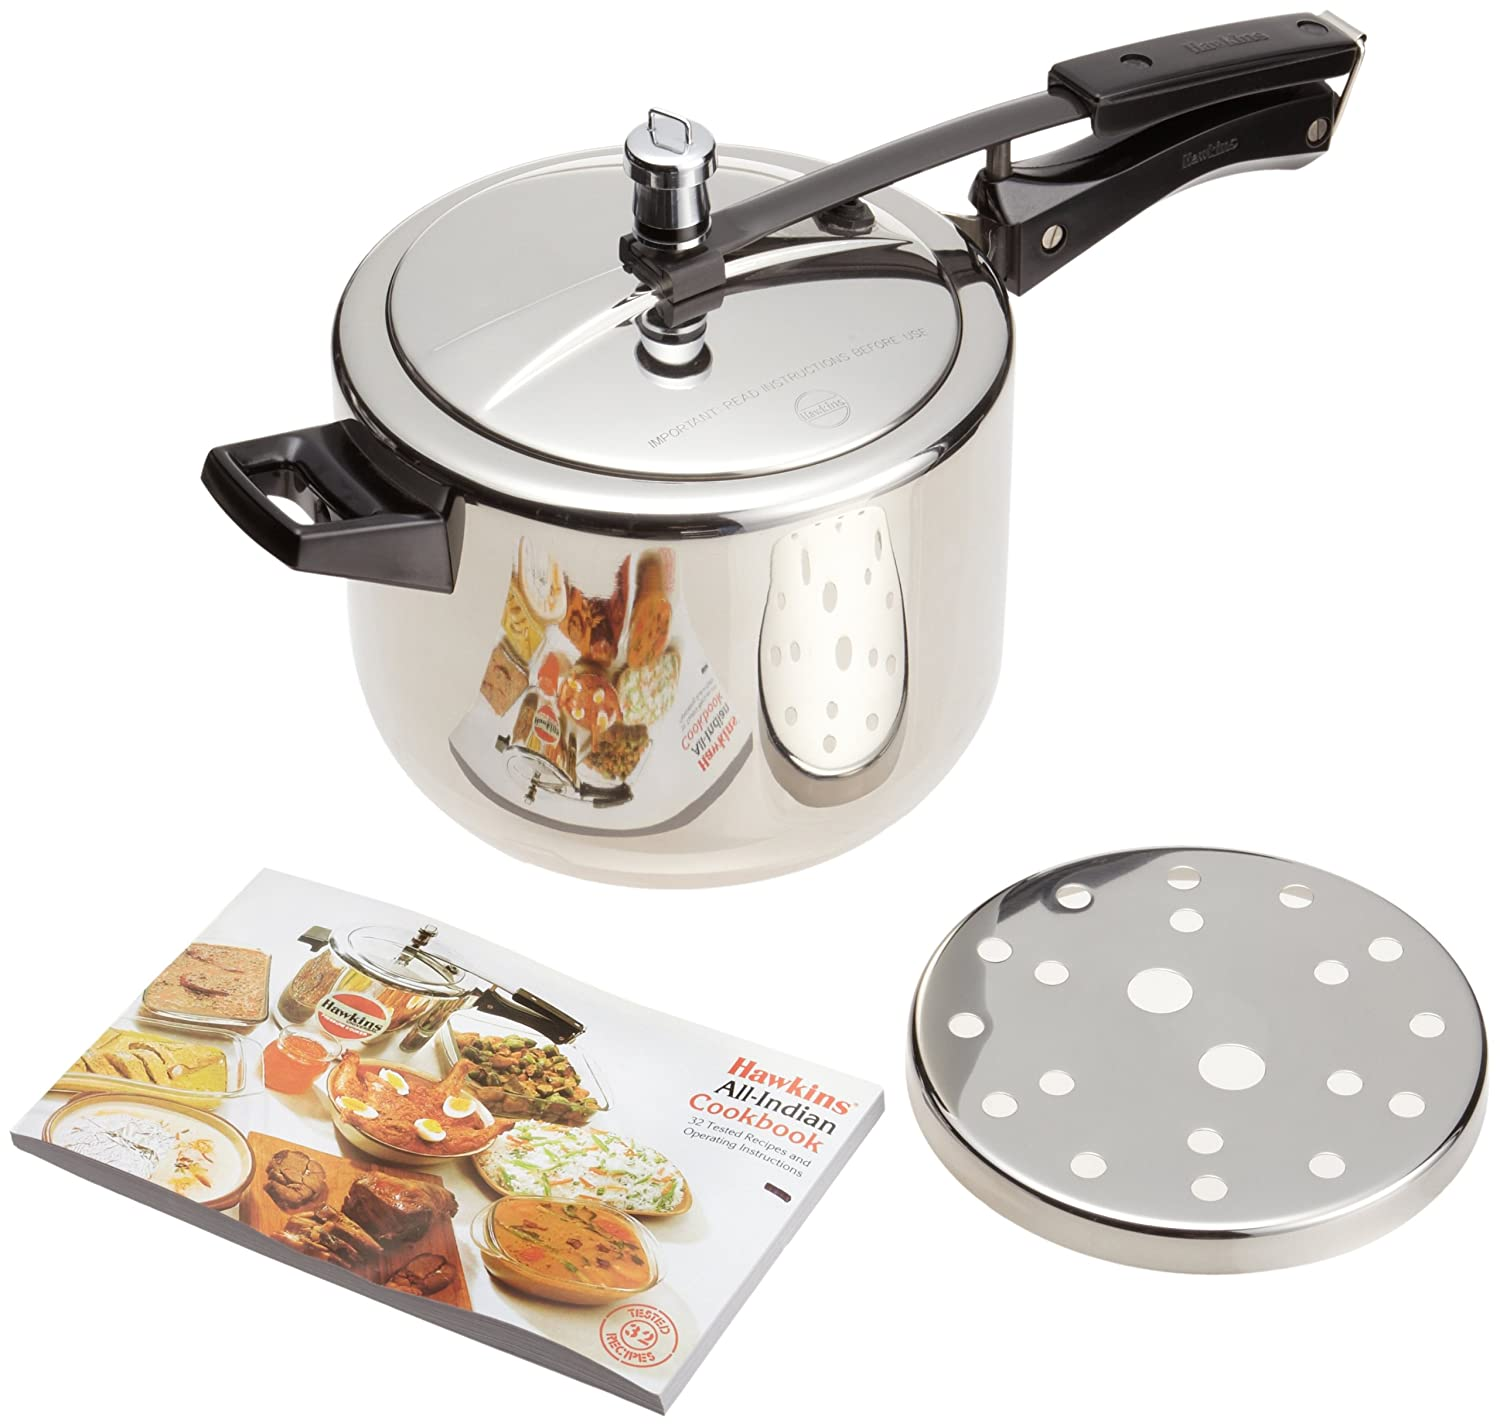 Buy Hawkins Stainless Steel Pressure Cooker 5 Litres Online At Low Induction Circuit Boardsolar Cookerinduction Prices In India